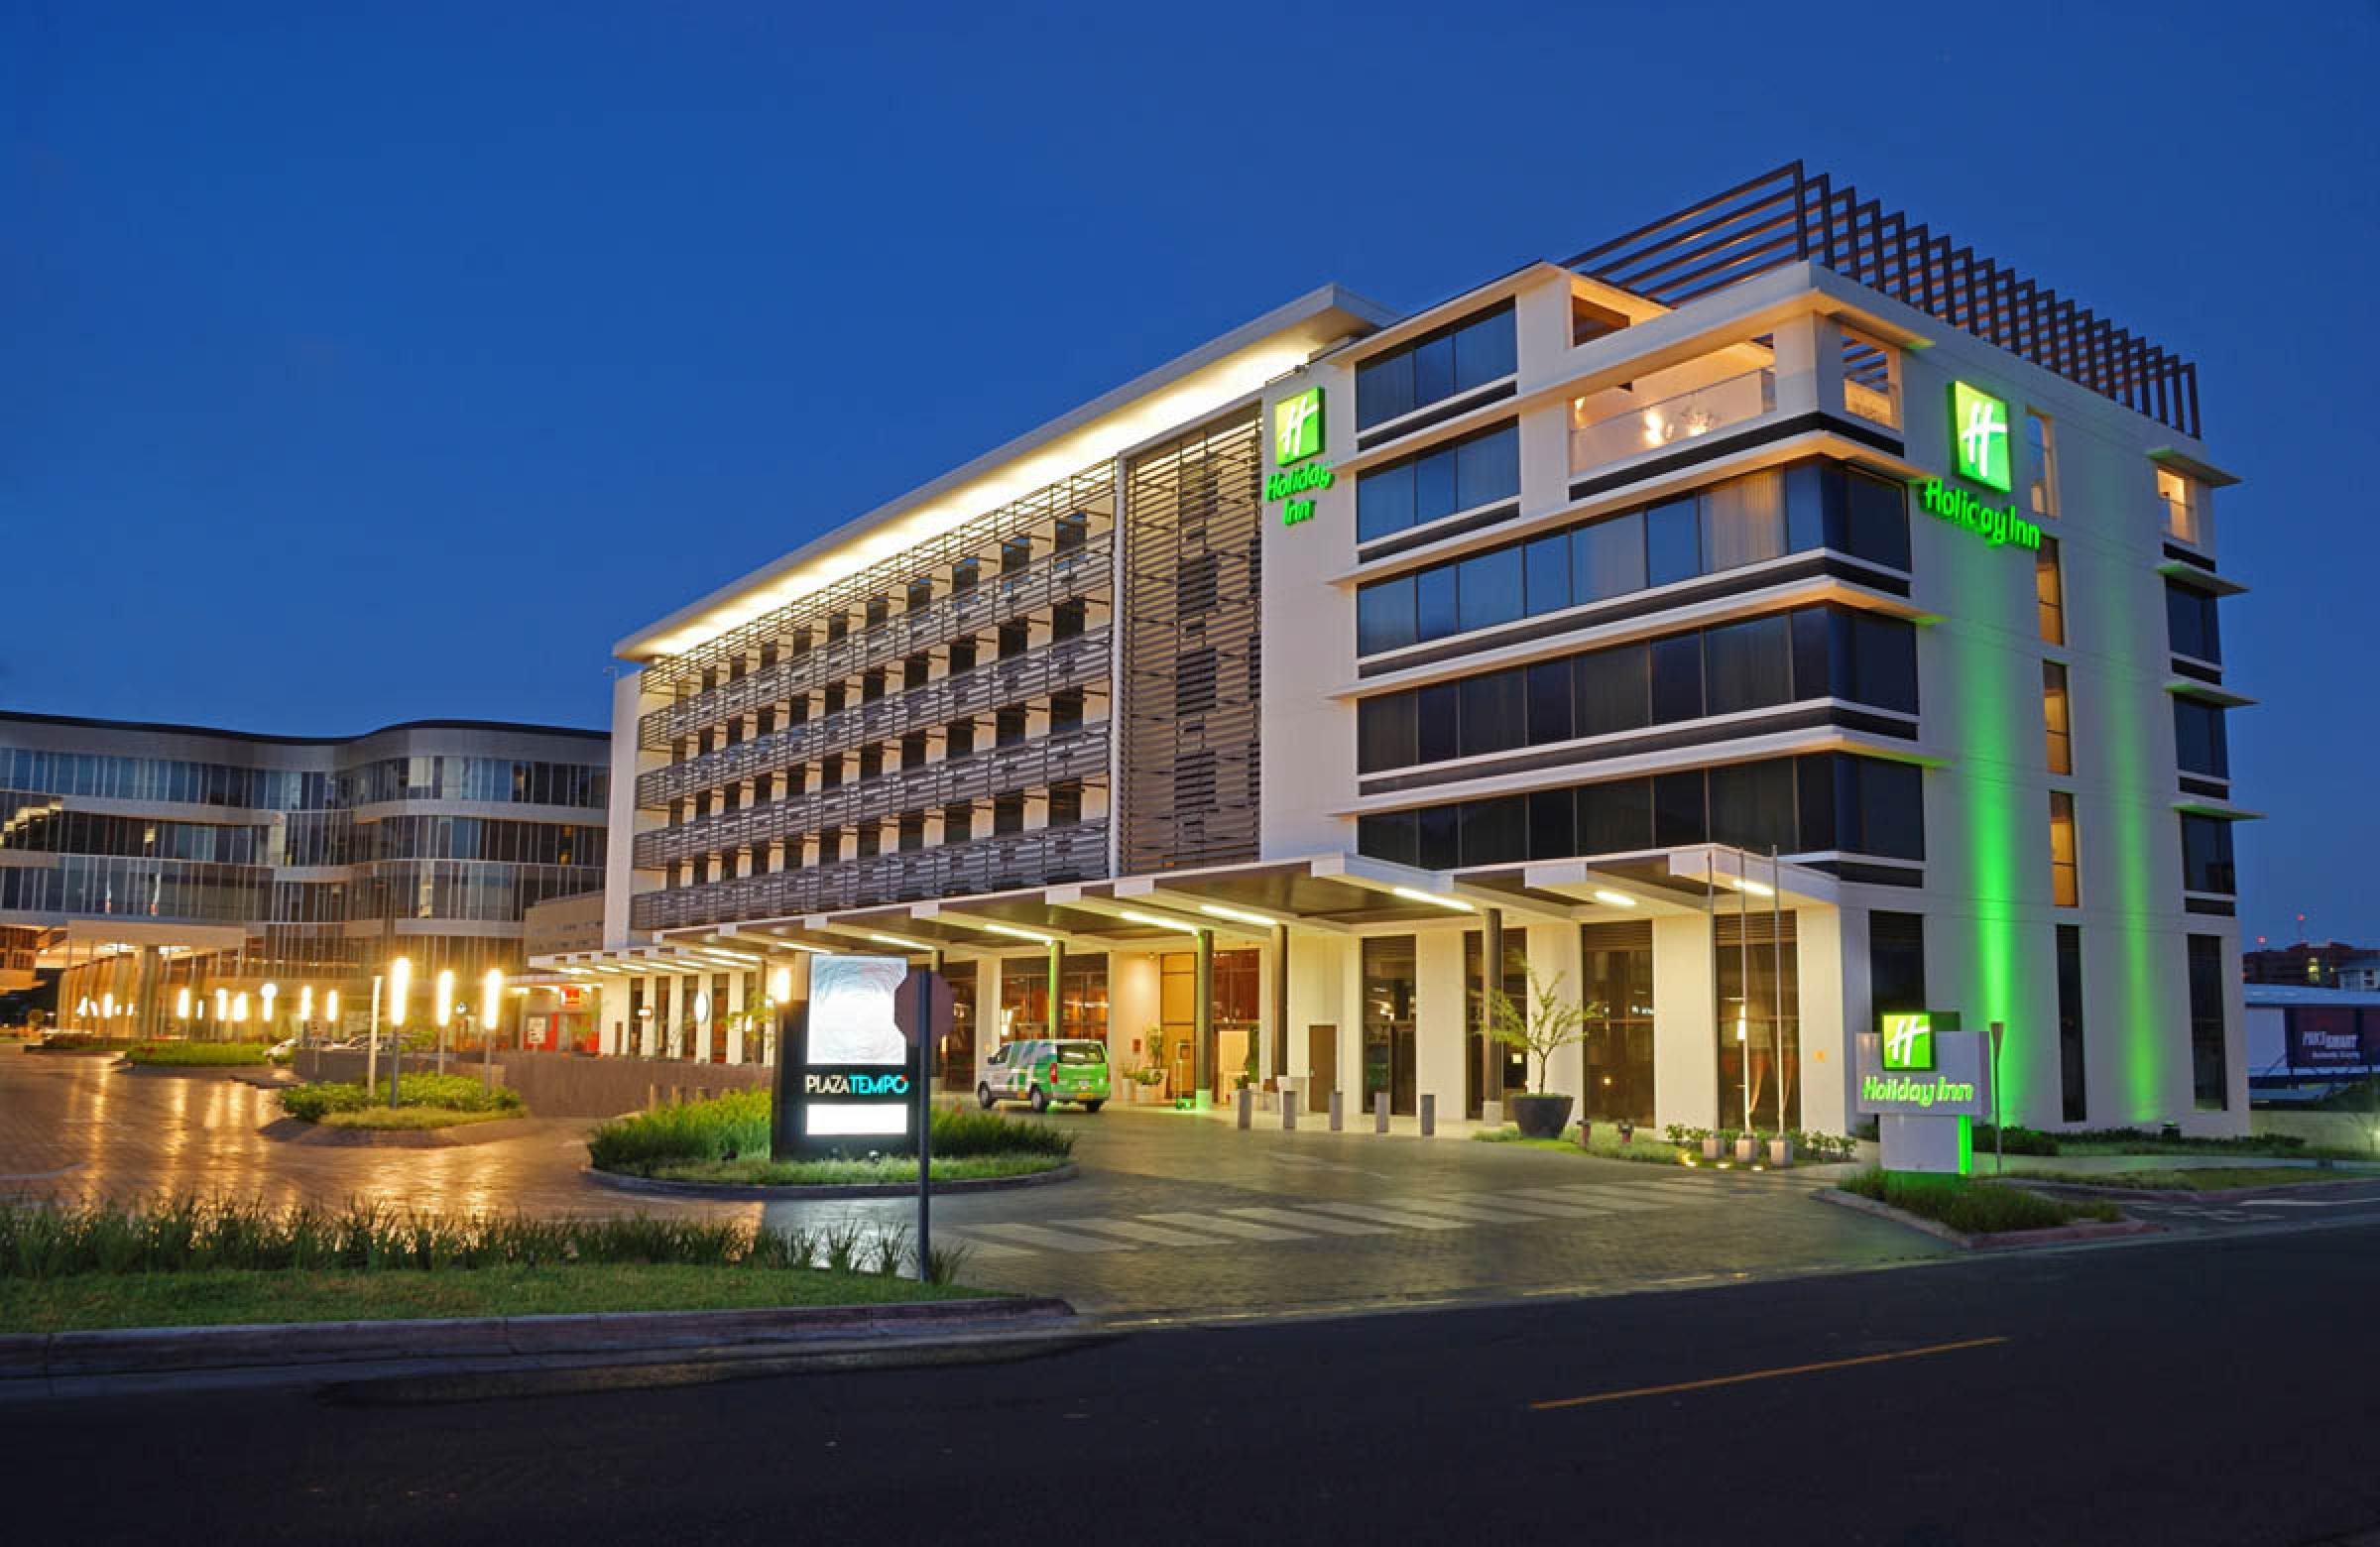 Holiday Inn Escazu